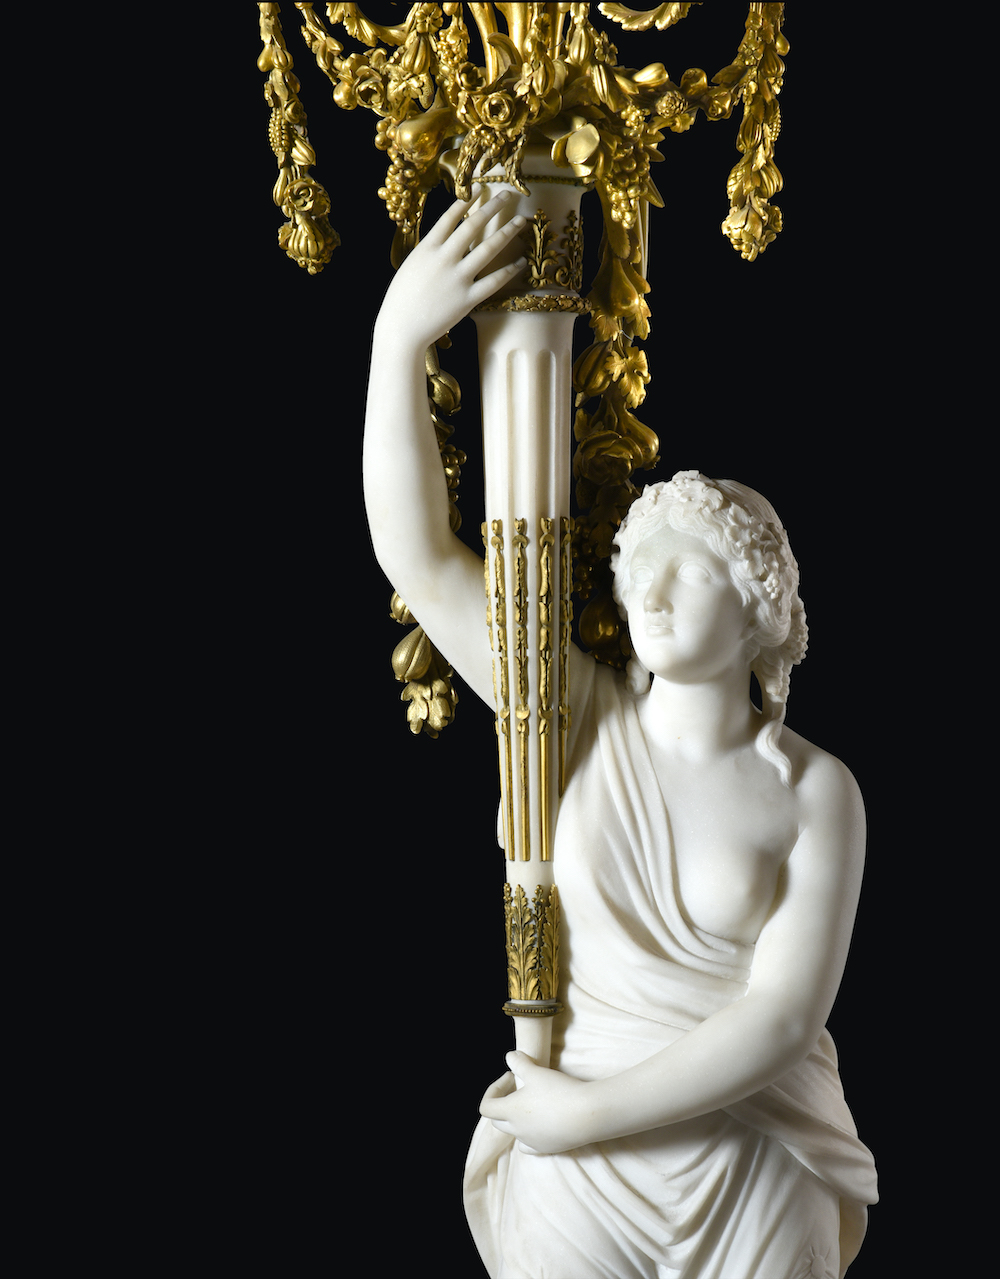 pair of French ormolu-mounted white marble and porphyry candelabra